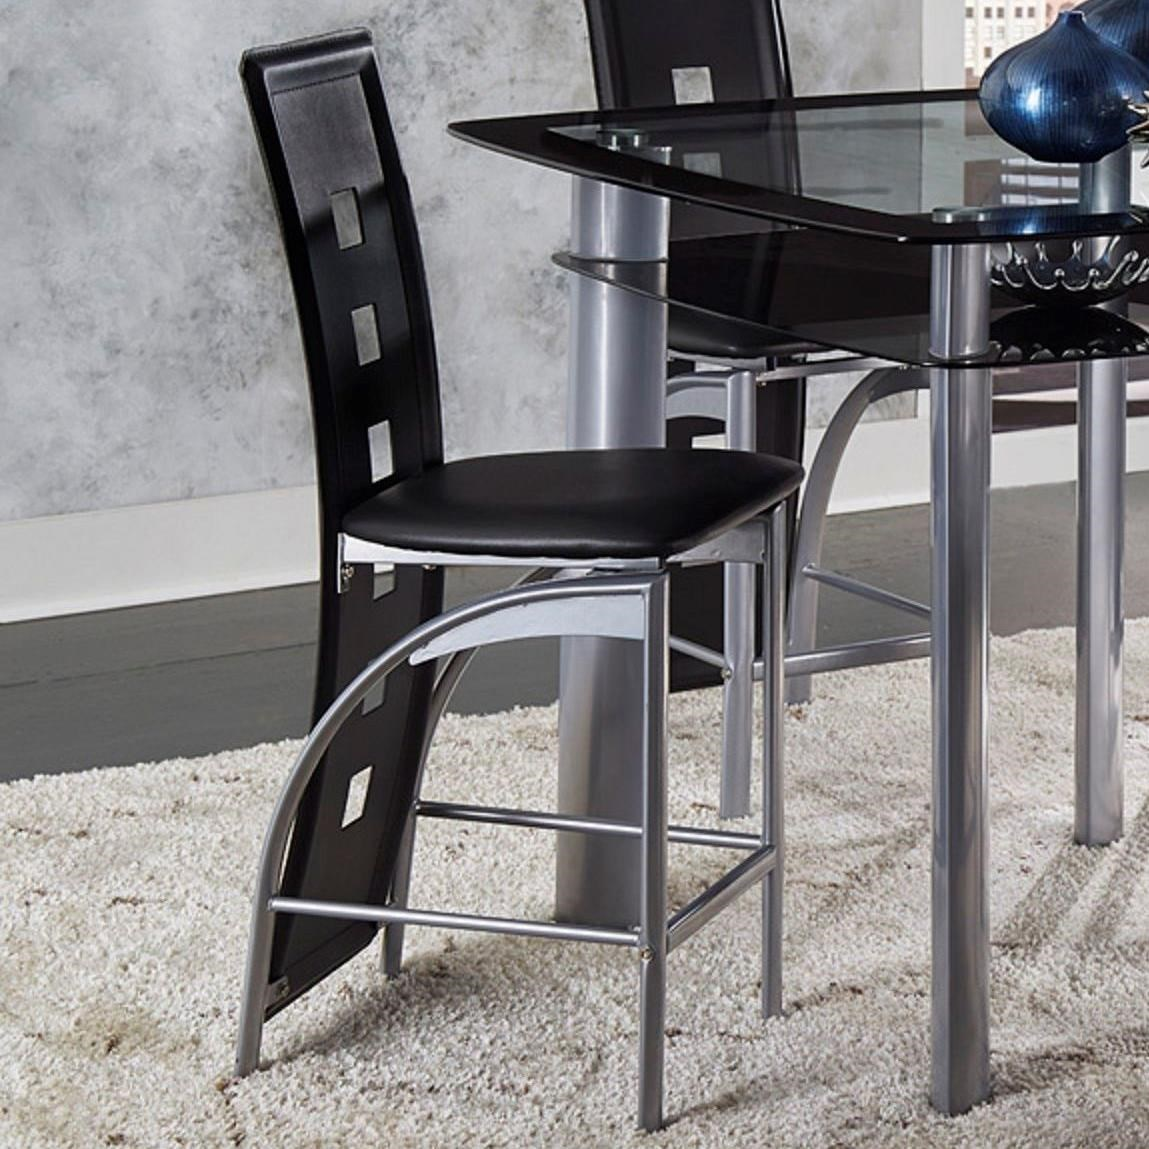 Sona Counter Height Stool by Homelegance at Beck's Furniture